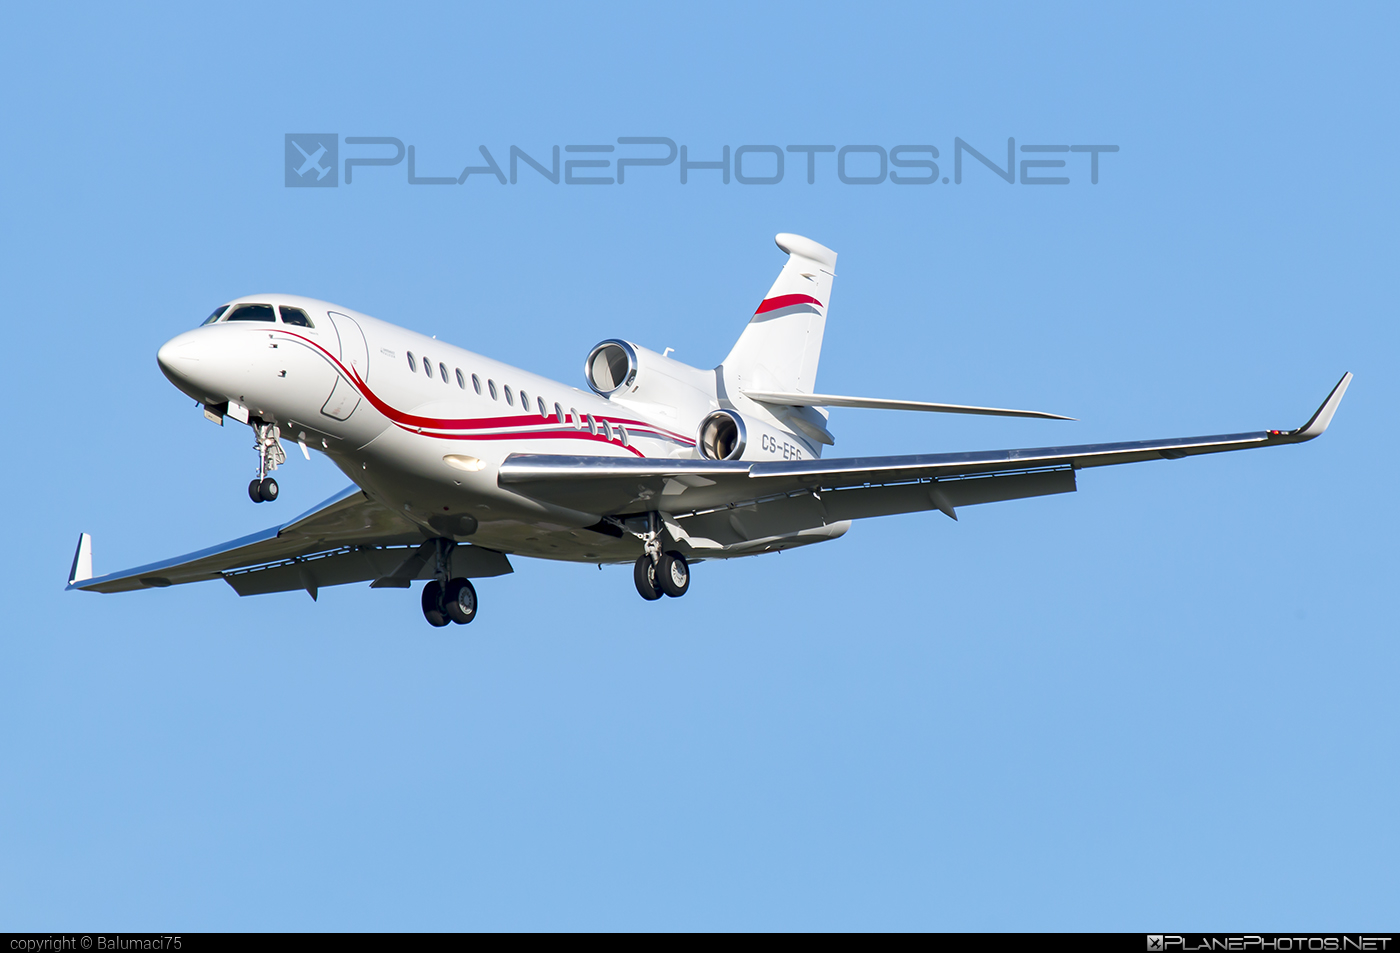 Dassault Falcon 7X - CS-EFG operated by Executive Jet Management Europe #dassault #dassaultfalcon #dassaultfalcon7x #ejme #ejmeurope #falcon7x